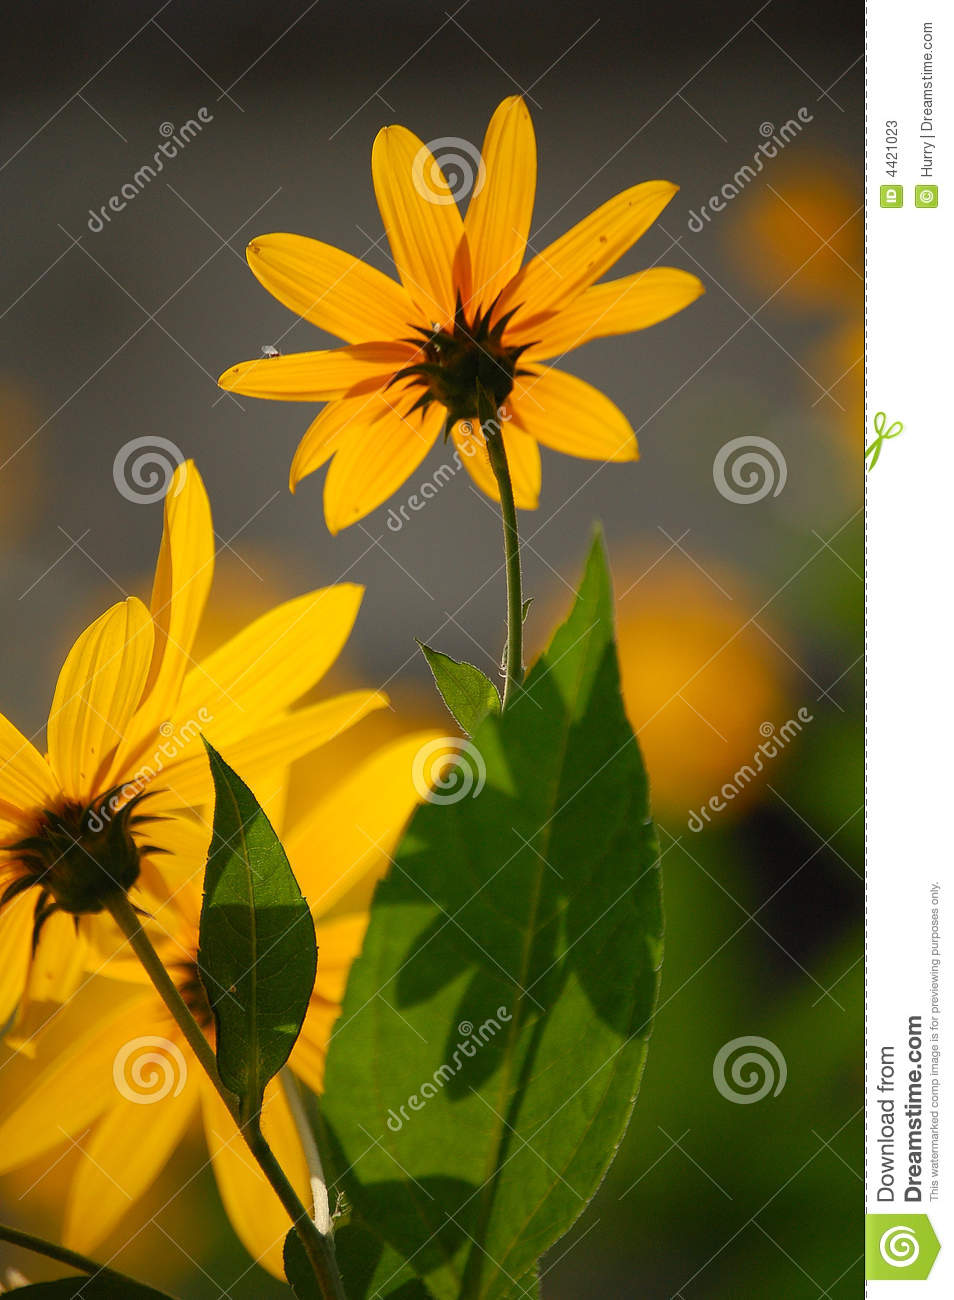 Wild yellow flowers stock image image of green flower 4421023 download wild yellow flowers stock image image of green flower 4421023 mightylinksfo